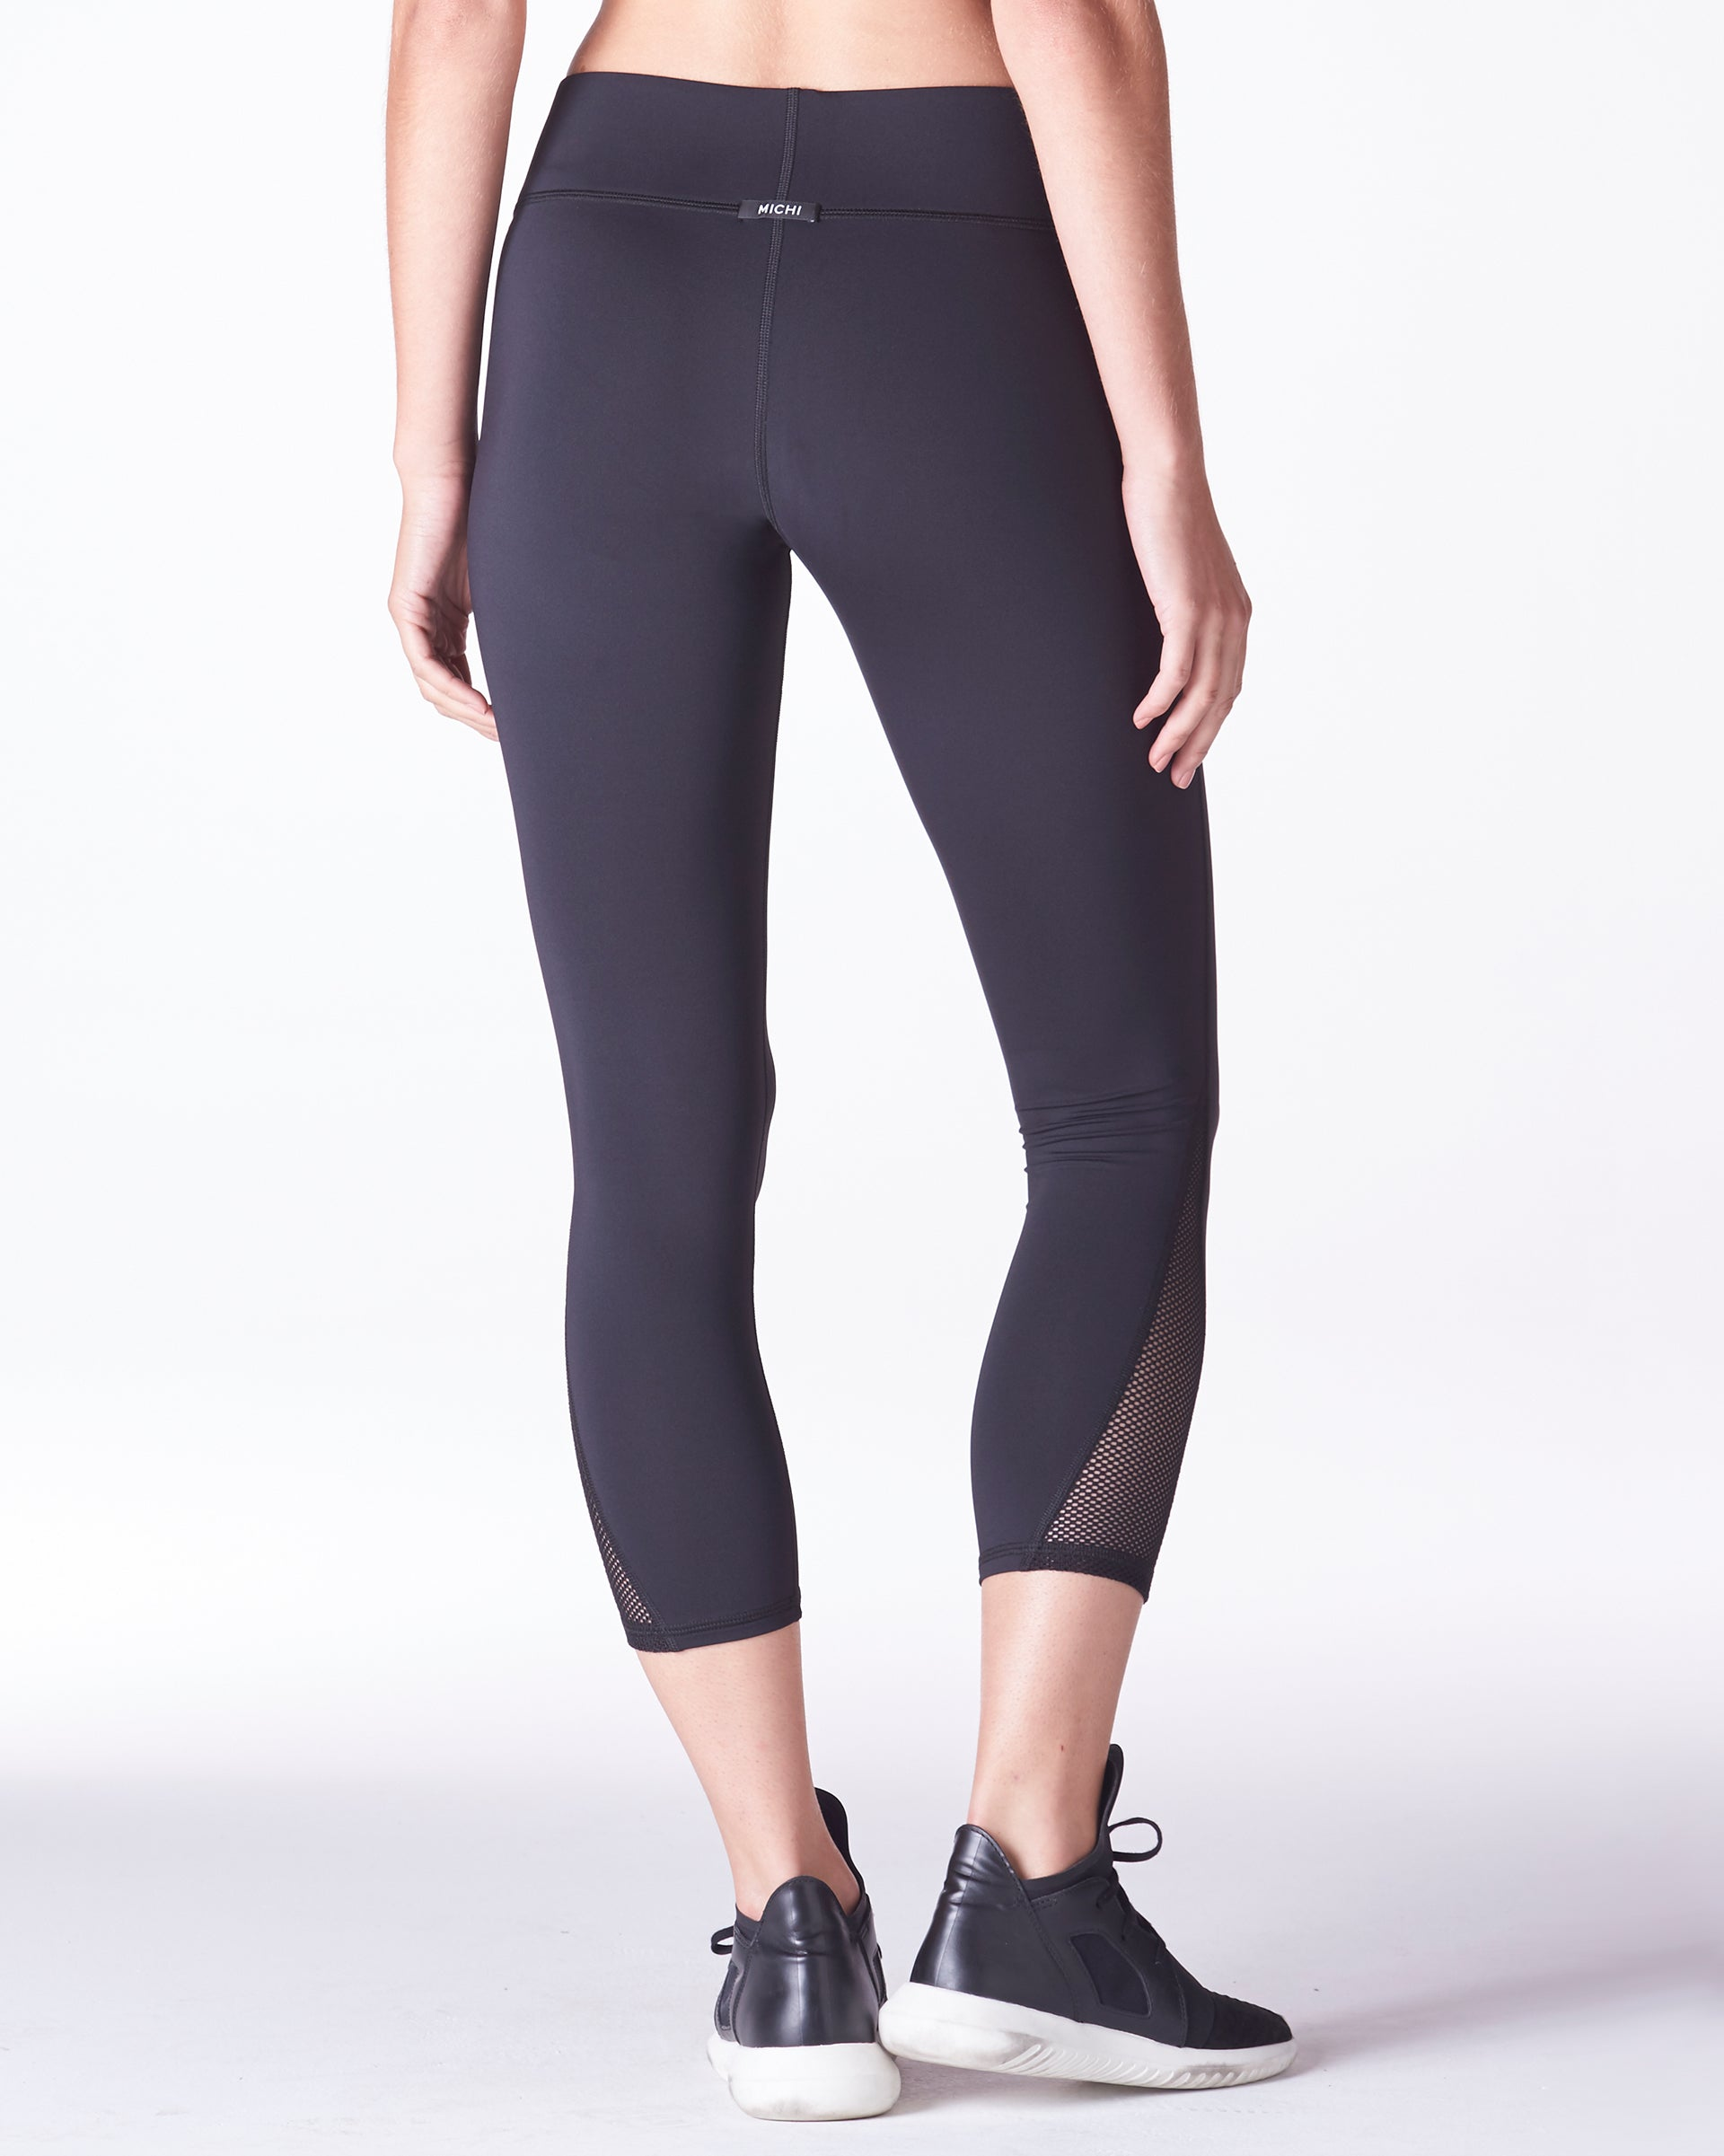 vyper-crop-legging-black